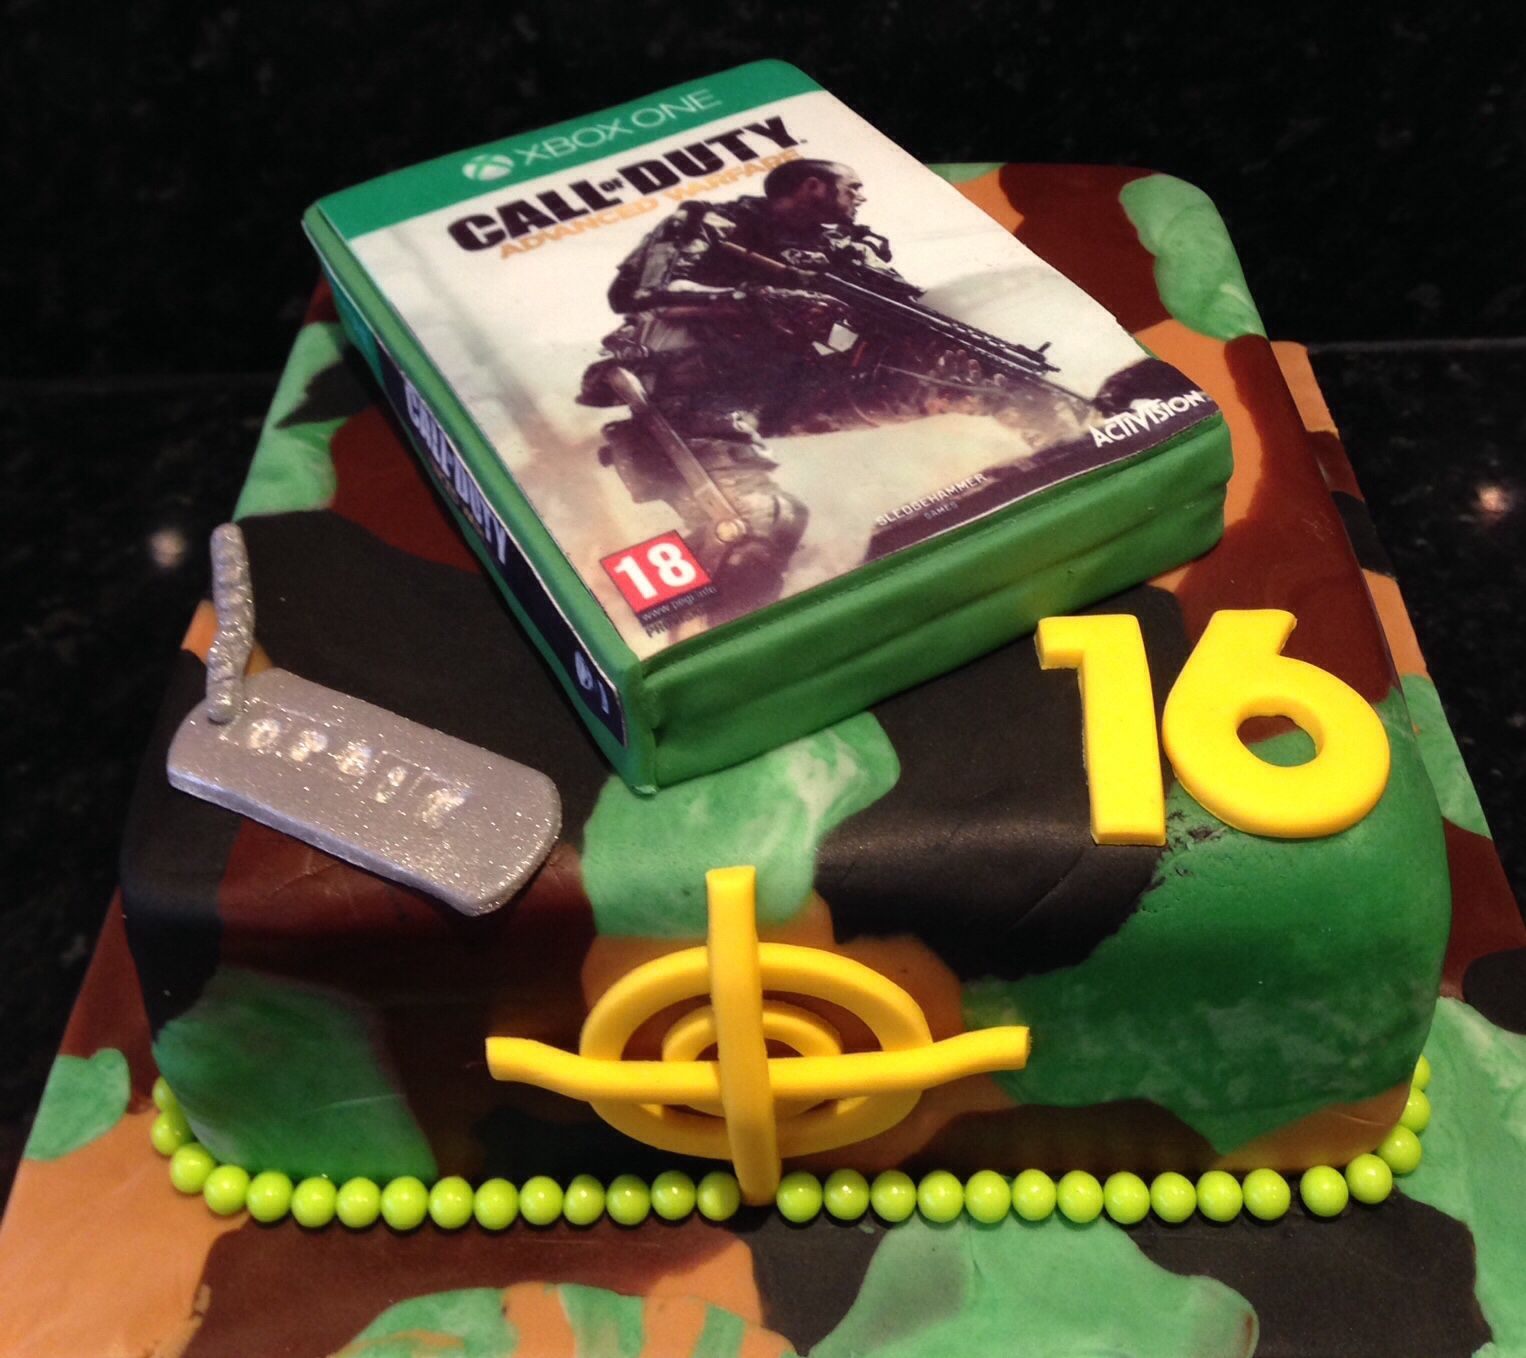 Call of duty ghosts cake via Walmart | Call of Duty: Ghosts ...